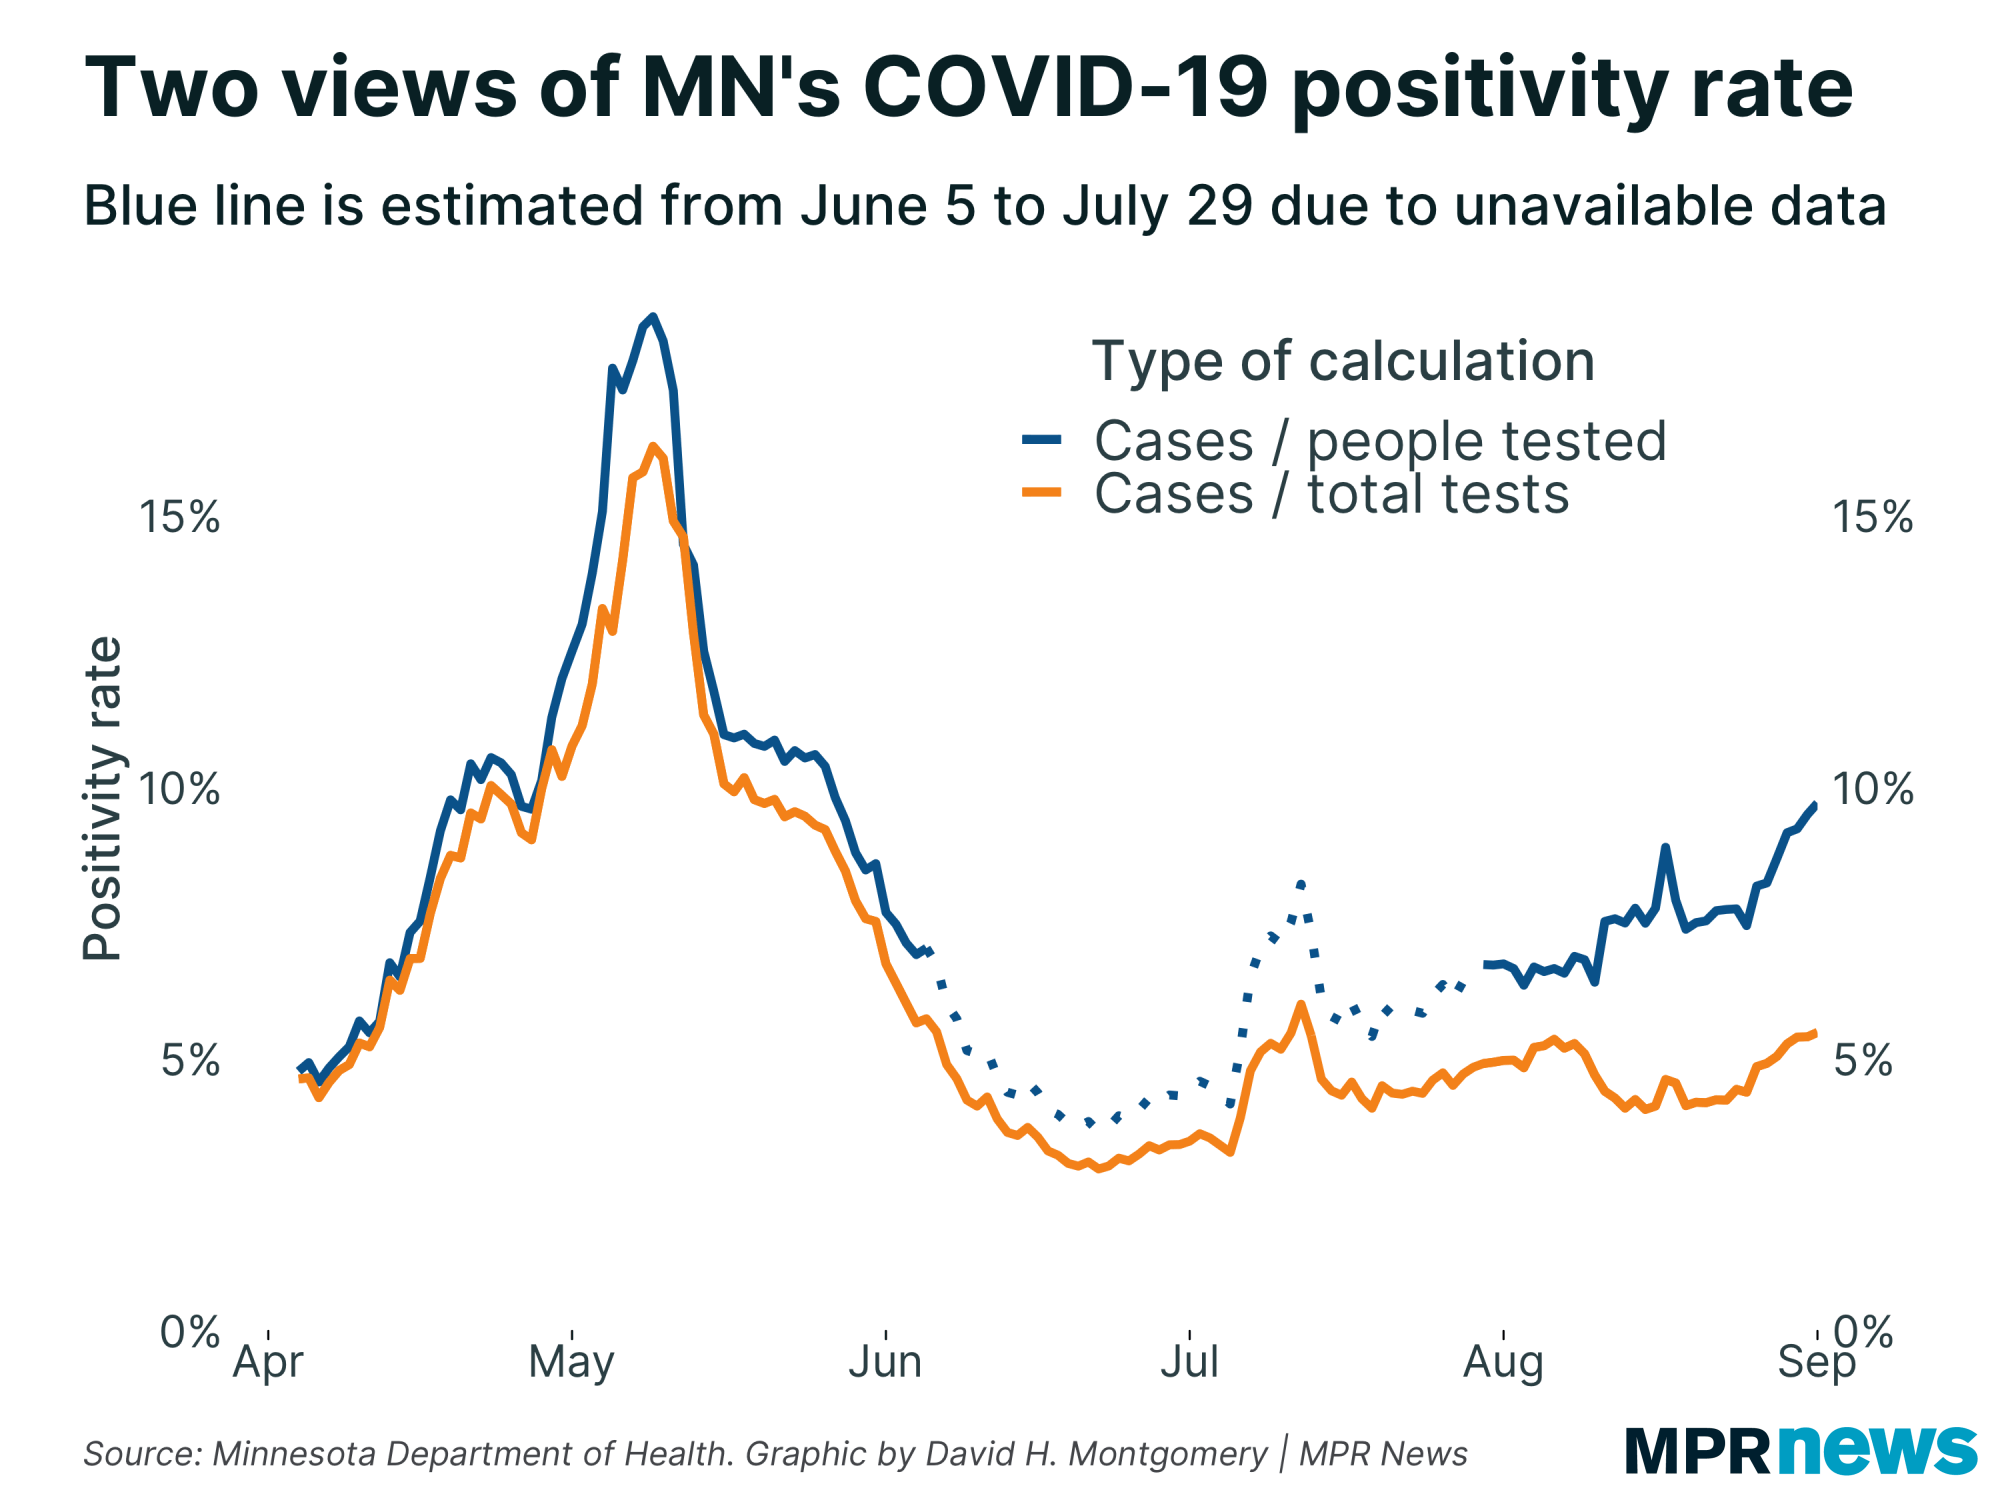 Two ways of calculating Minnesota's COVID-19 positive test rate